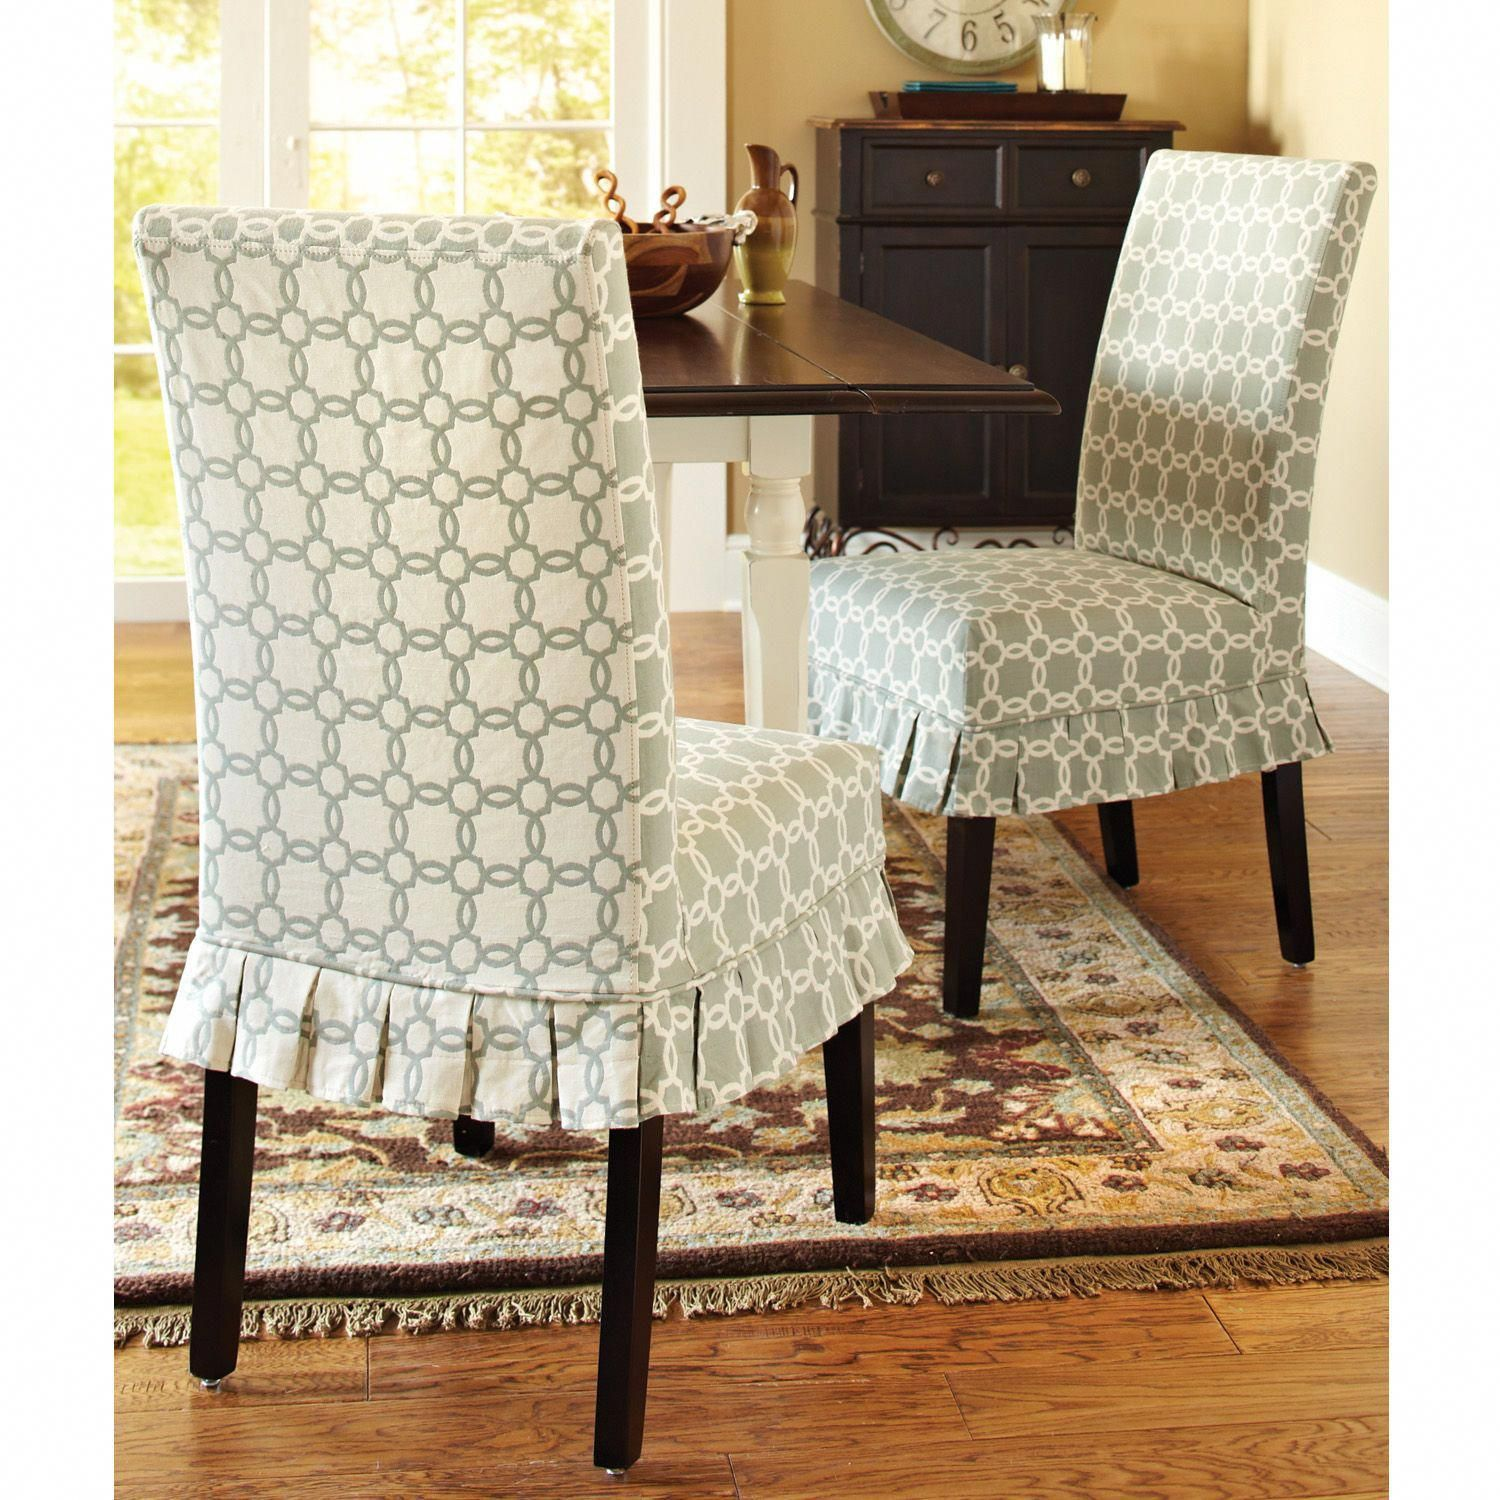 Possible accent chair for family room or as side chairs in